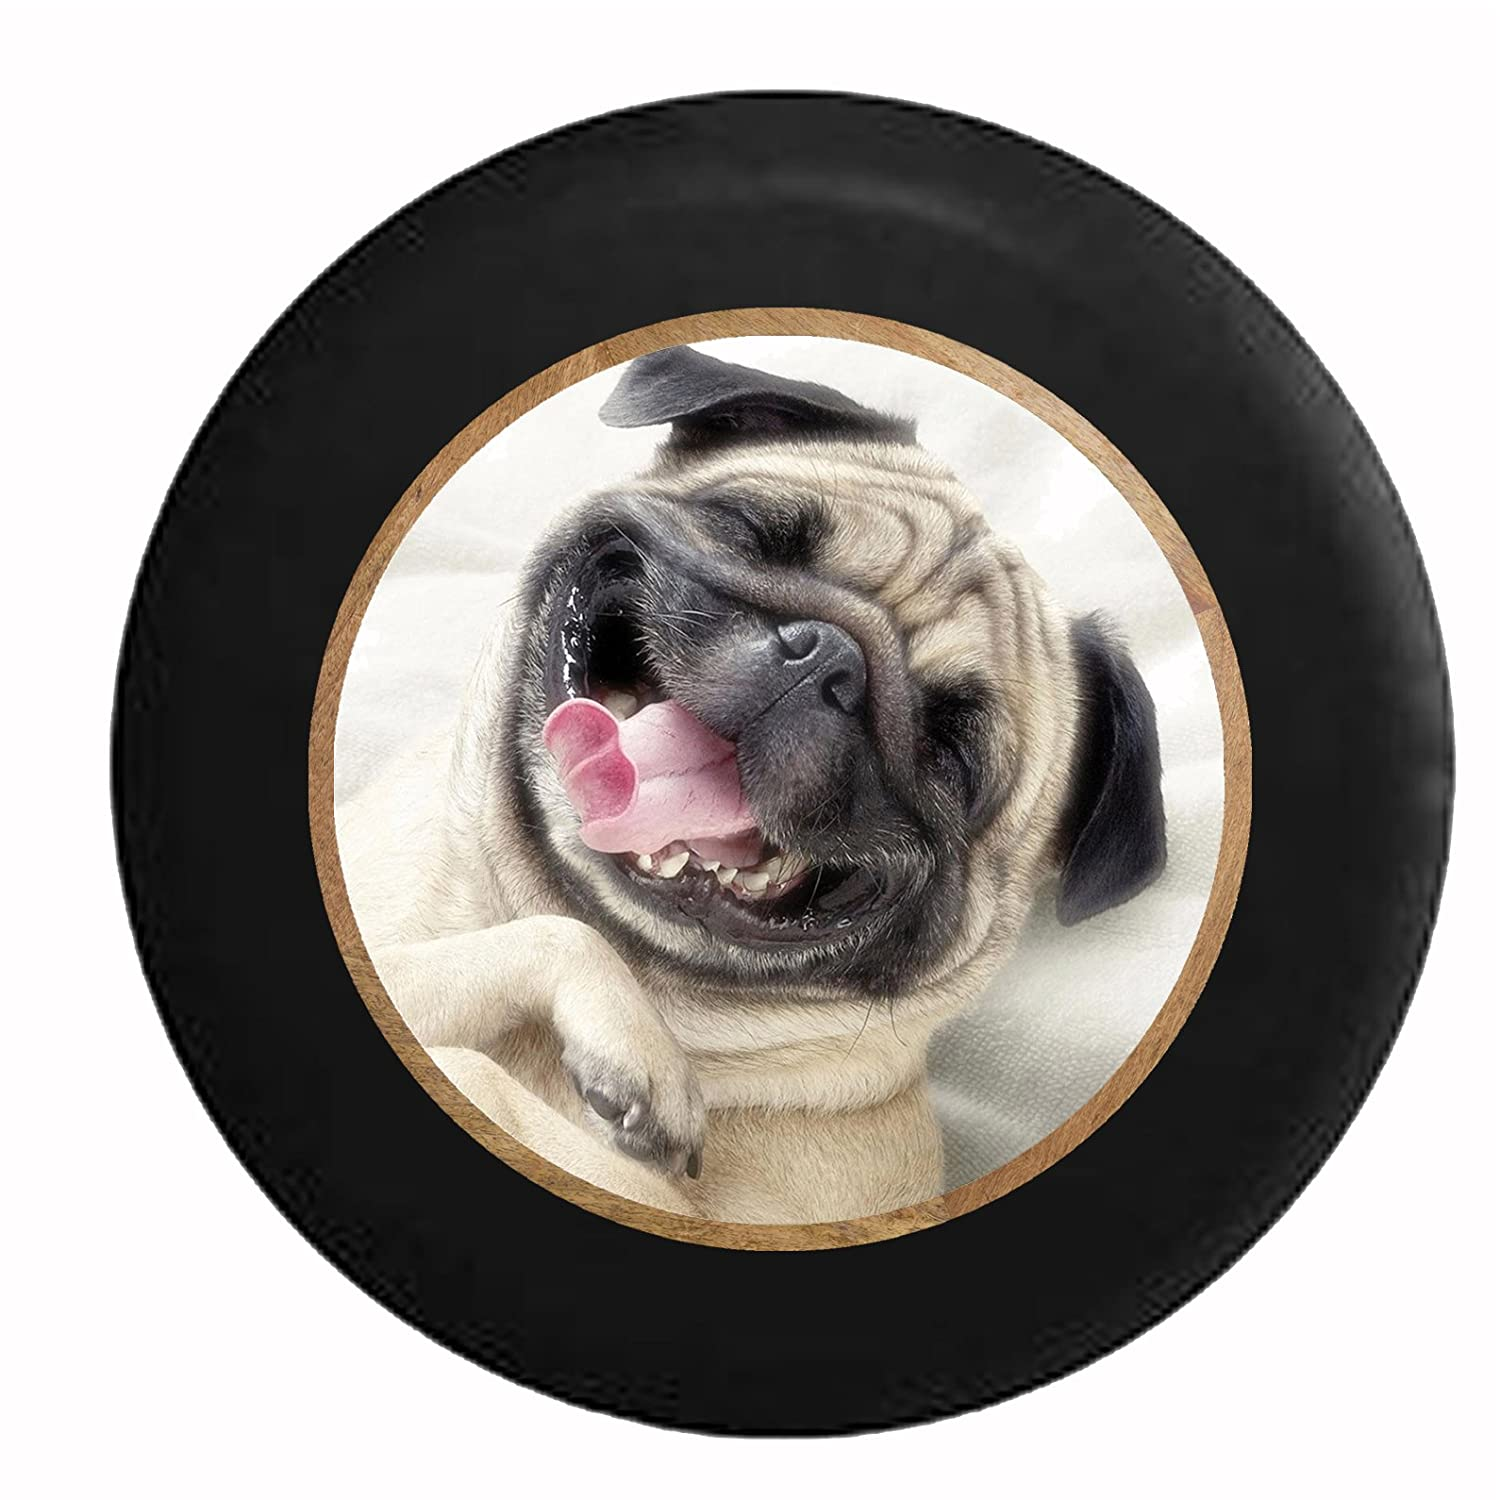 Full Color Smiling Pug Dog Cute Pet Jeep RV Camper Spare Tire Cover Black 26-27.5 in